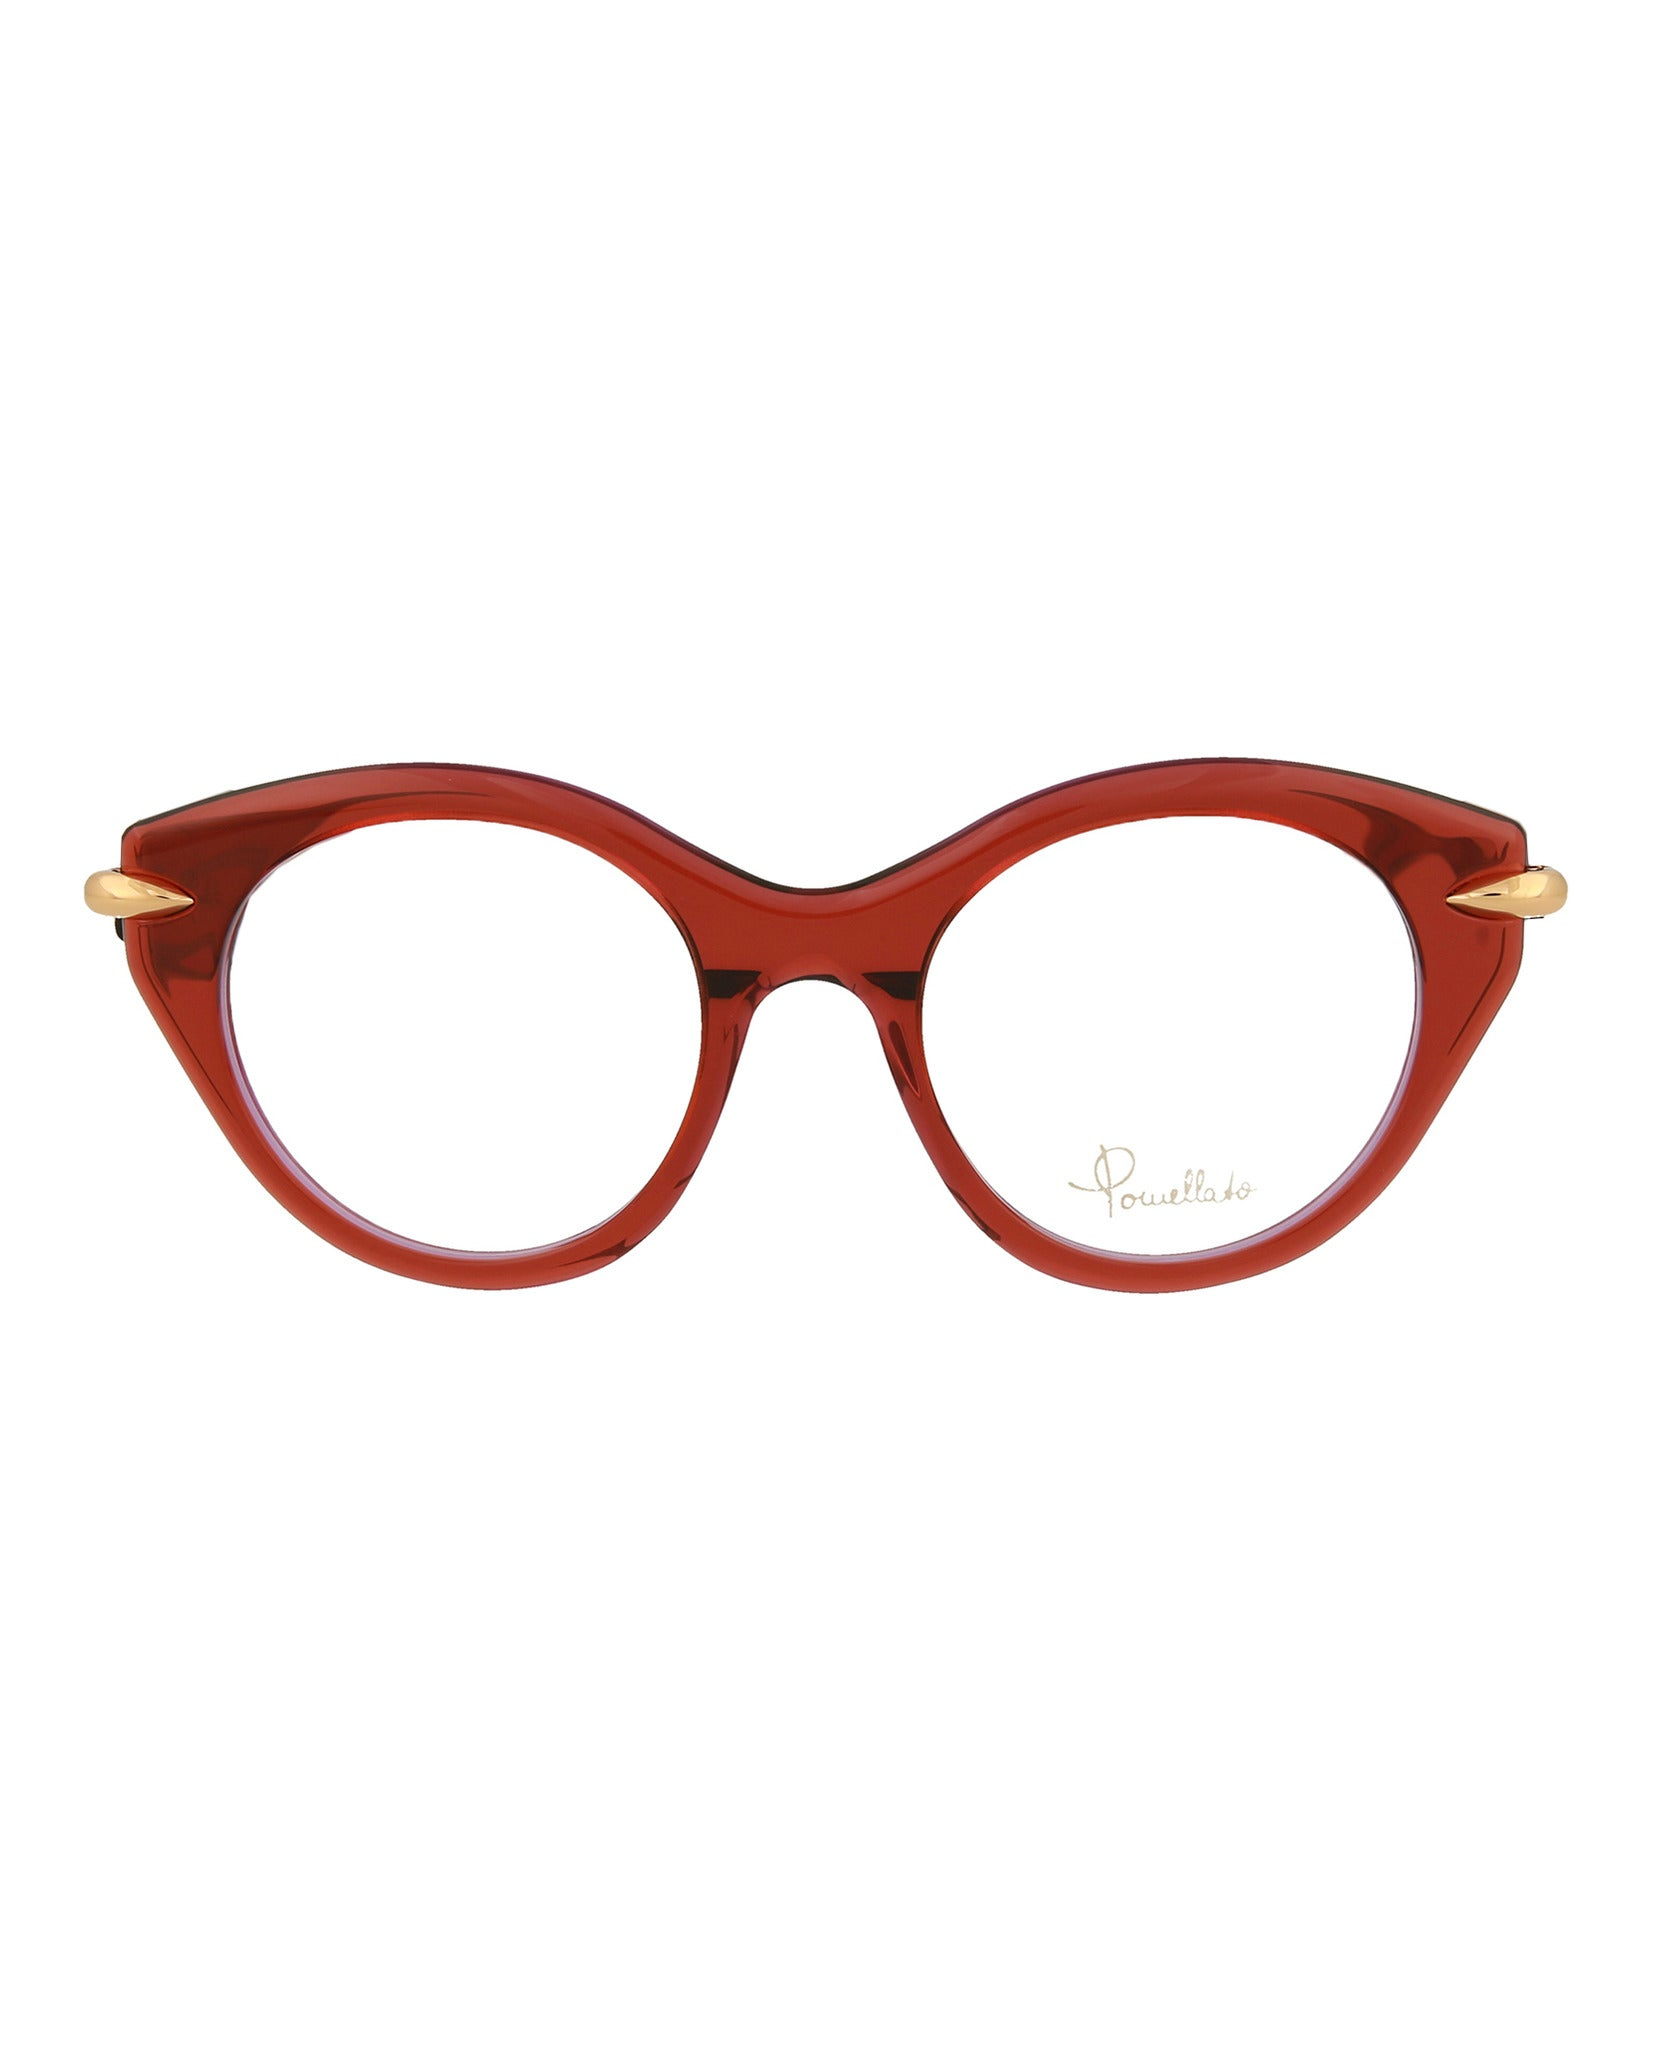 Pomellato Round/Oval Optical Frames